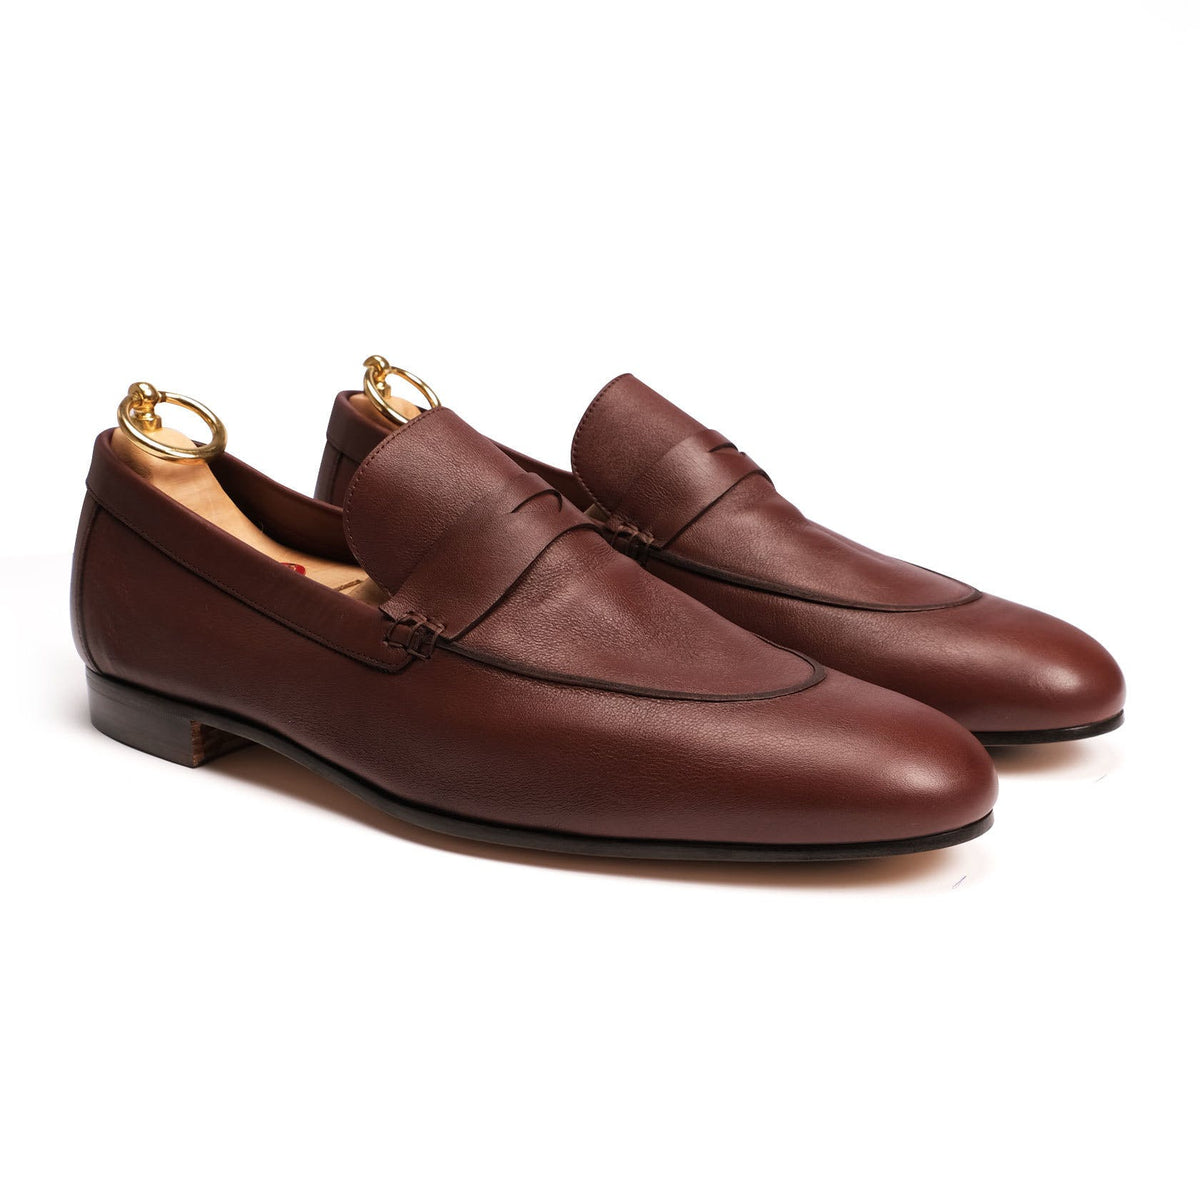 Rivolta Aria Milano 202 Loafer unlined with penny strap